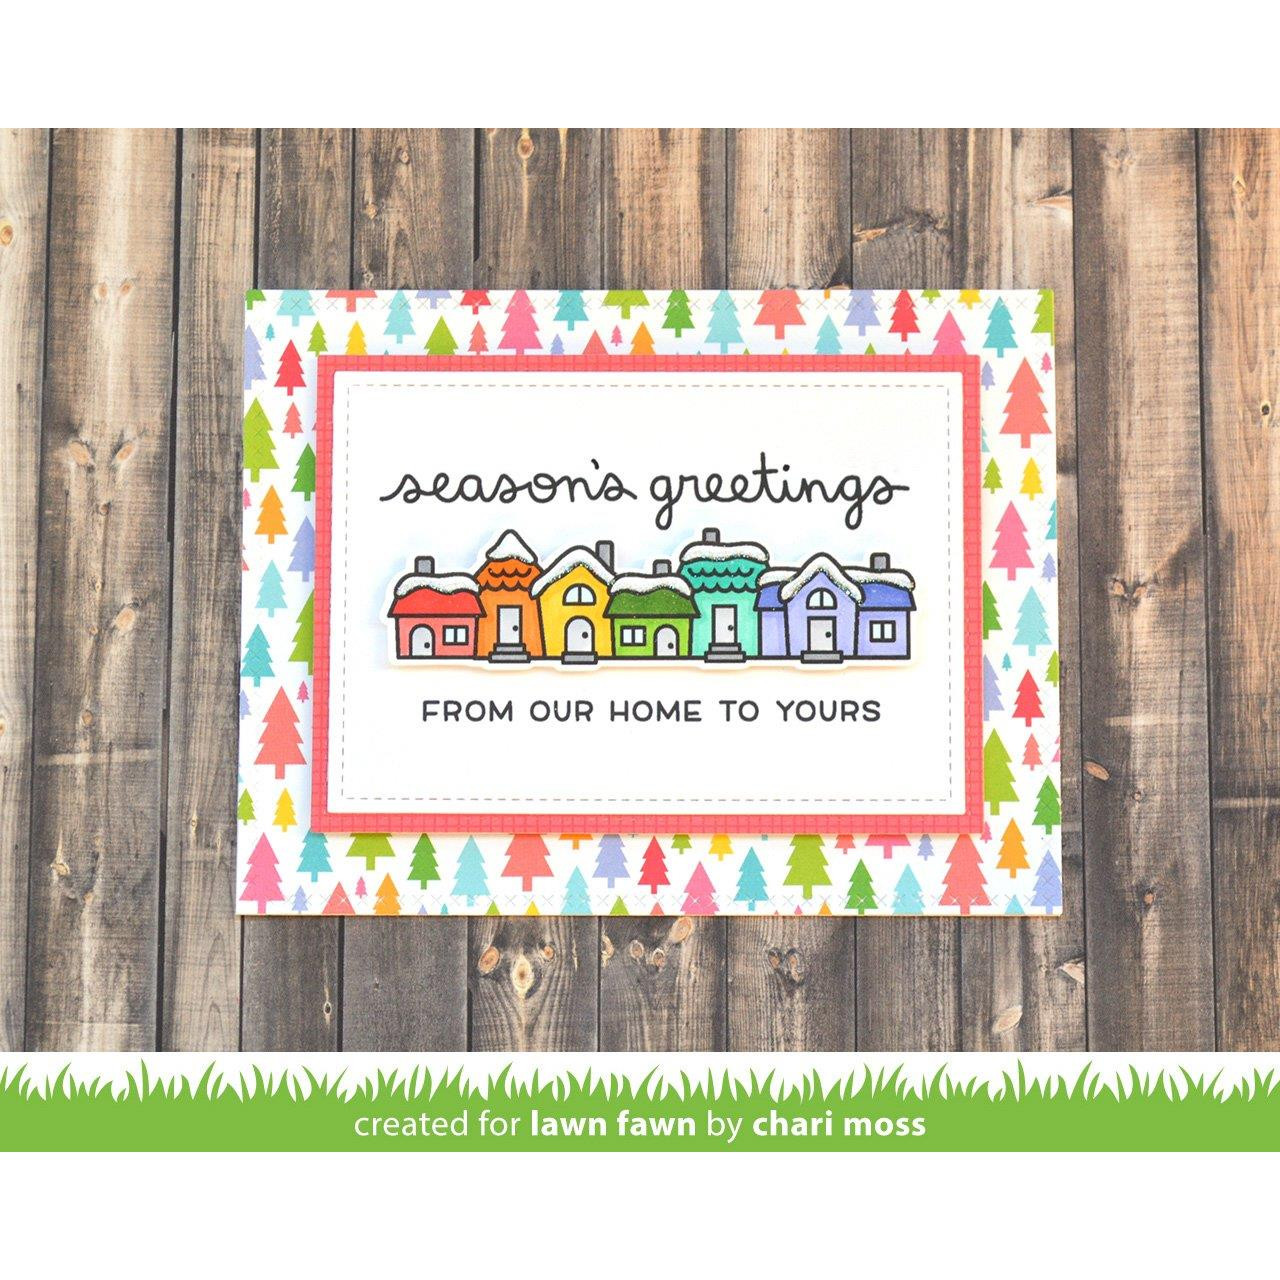 Winter Scripty Sentiments, Lawn Fawn Clear Stamps - 352926710656